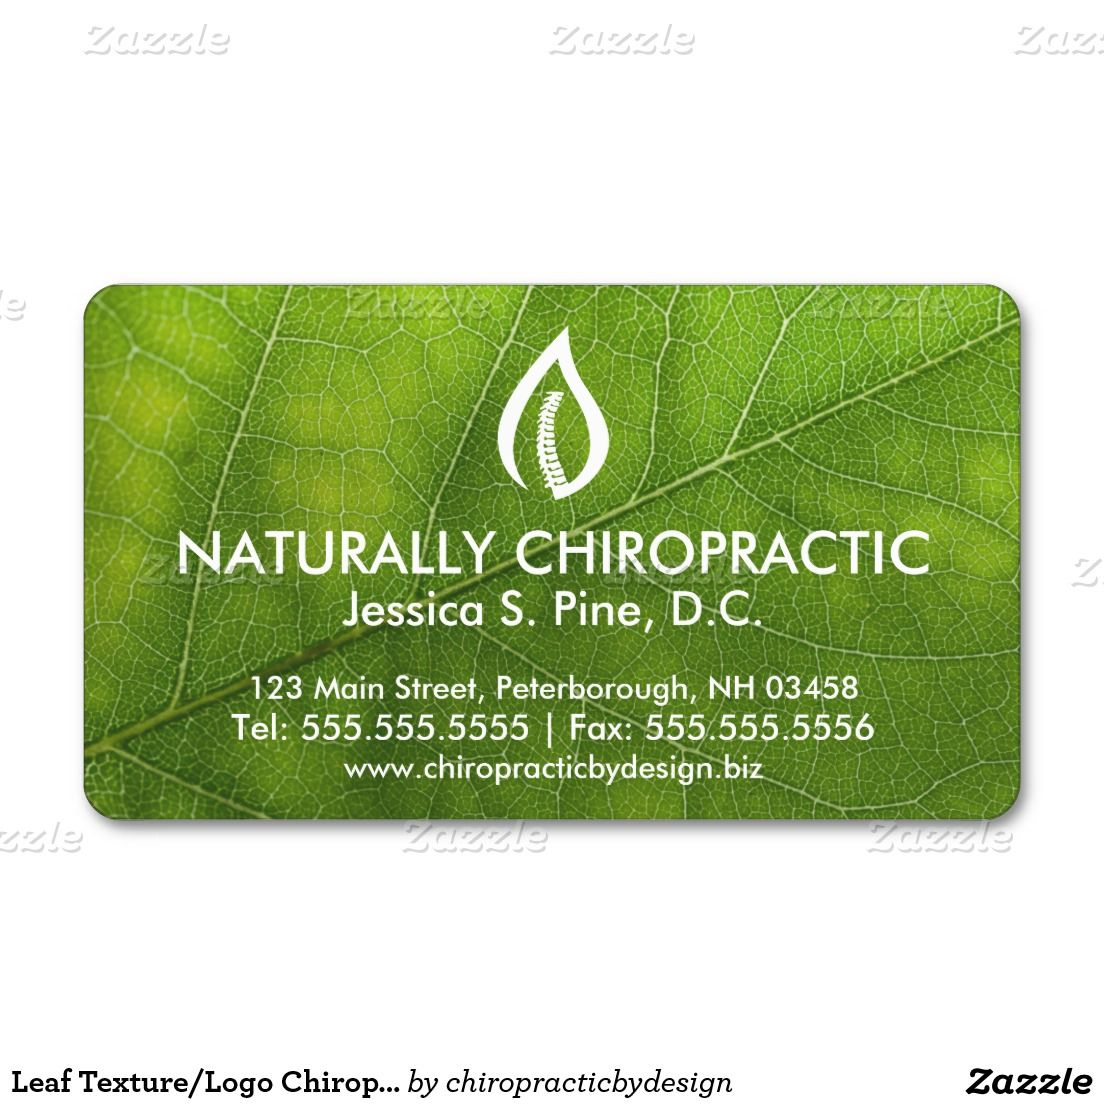 Leaf Texture Logo Chiropractic Business Cards Zazzle Com Leaf Texture Cards Business Card Design